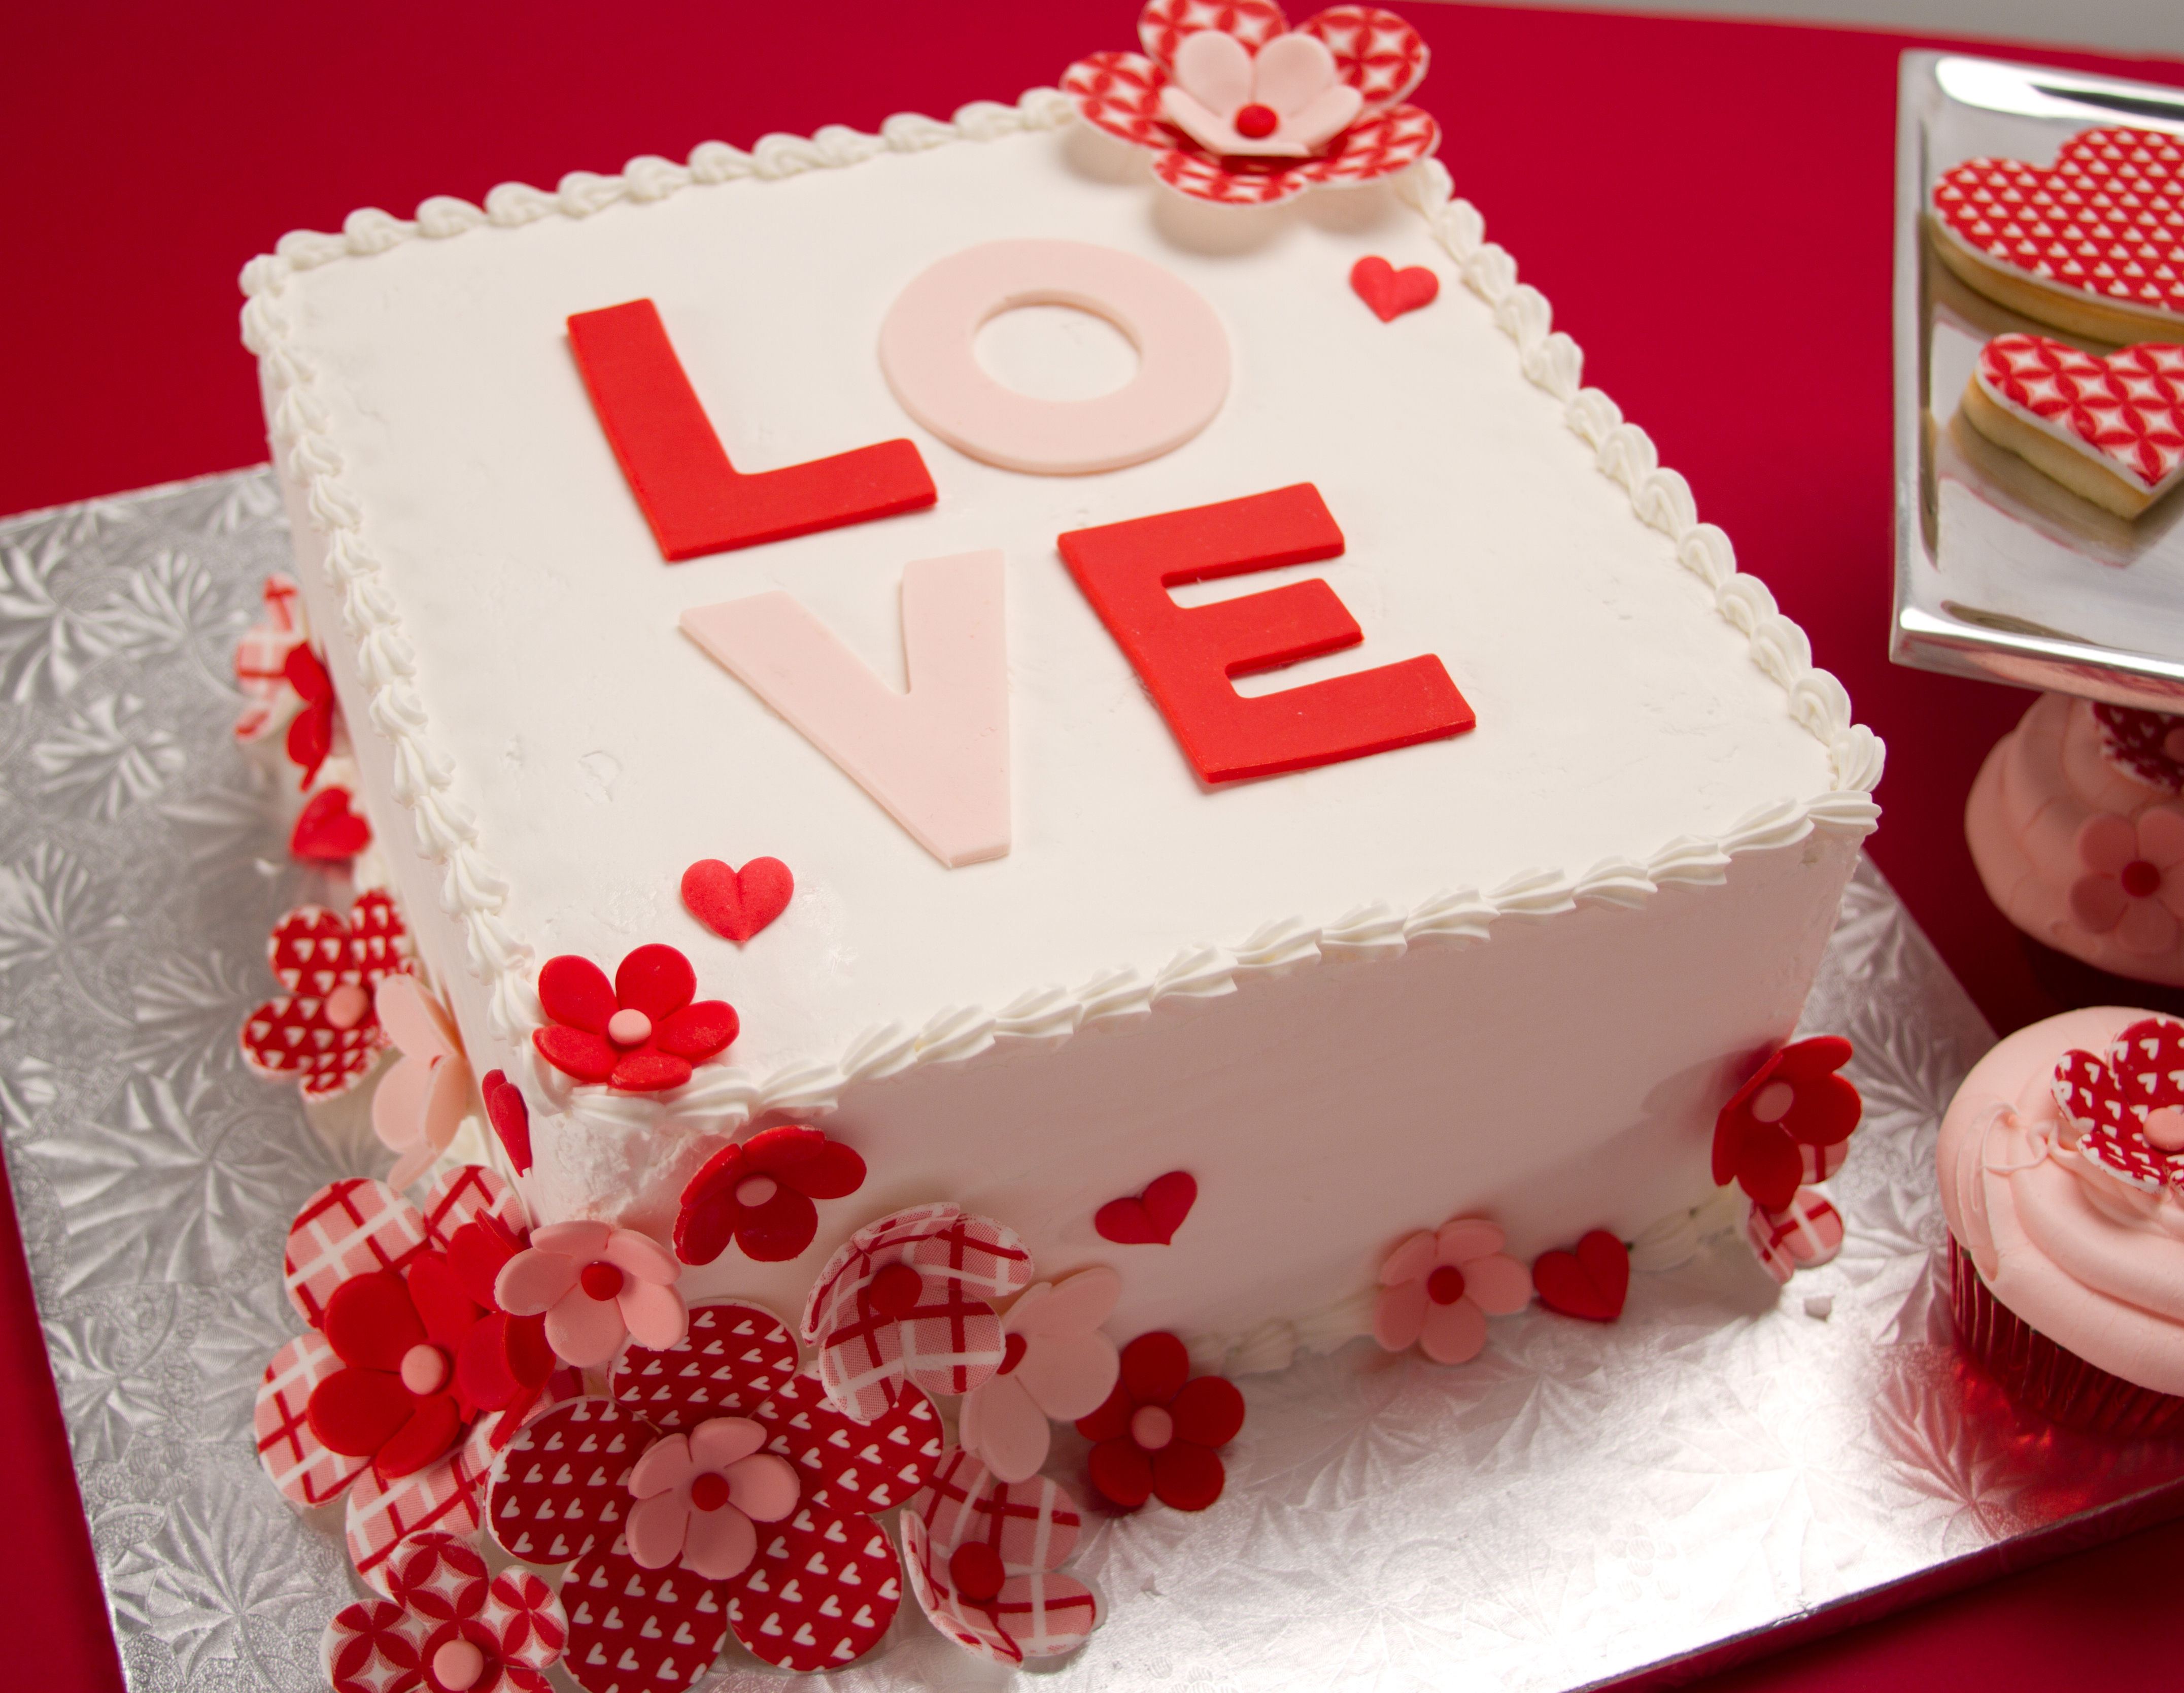 Time To Know The 5 Most Popular Valentine S Day Cakes Explody Full